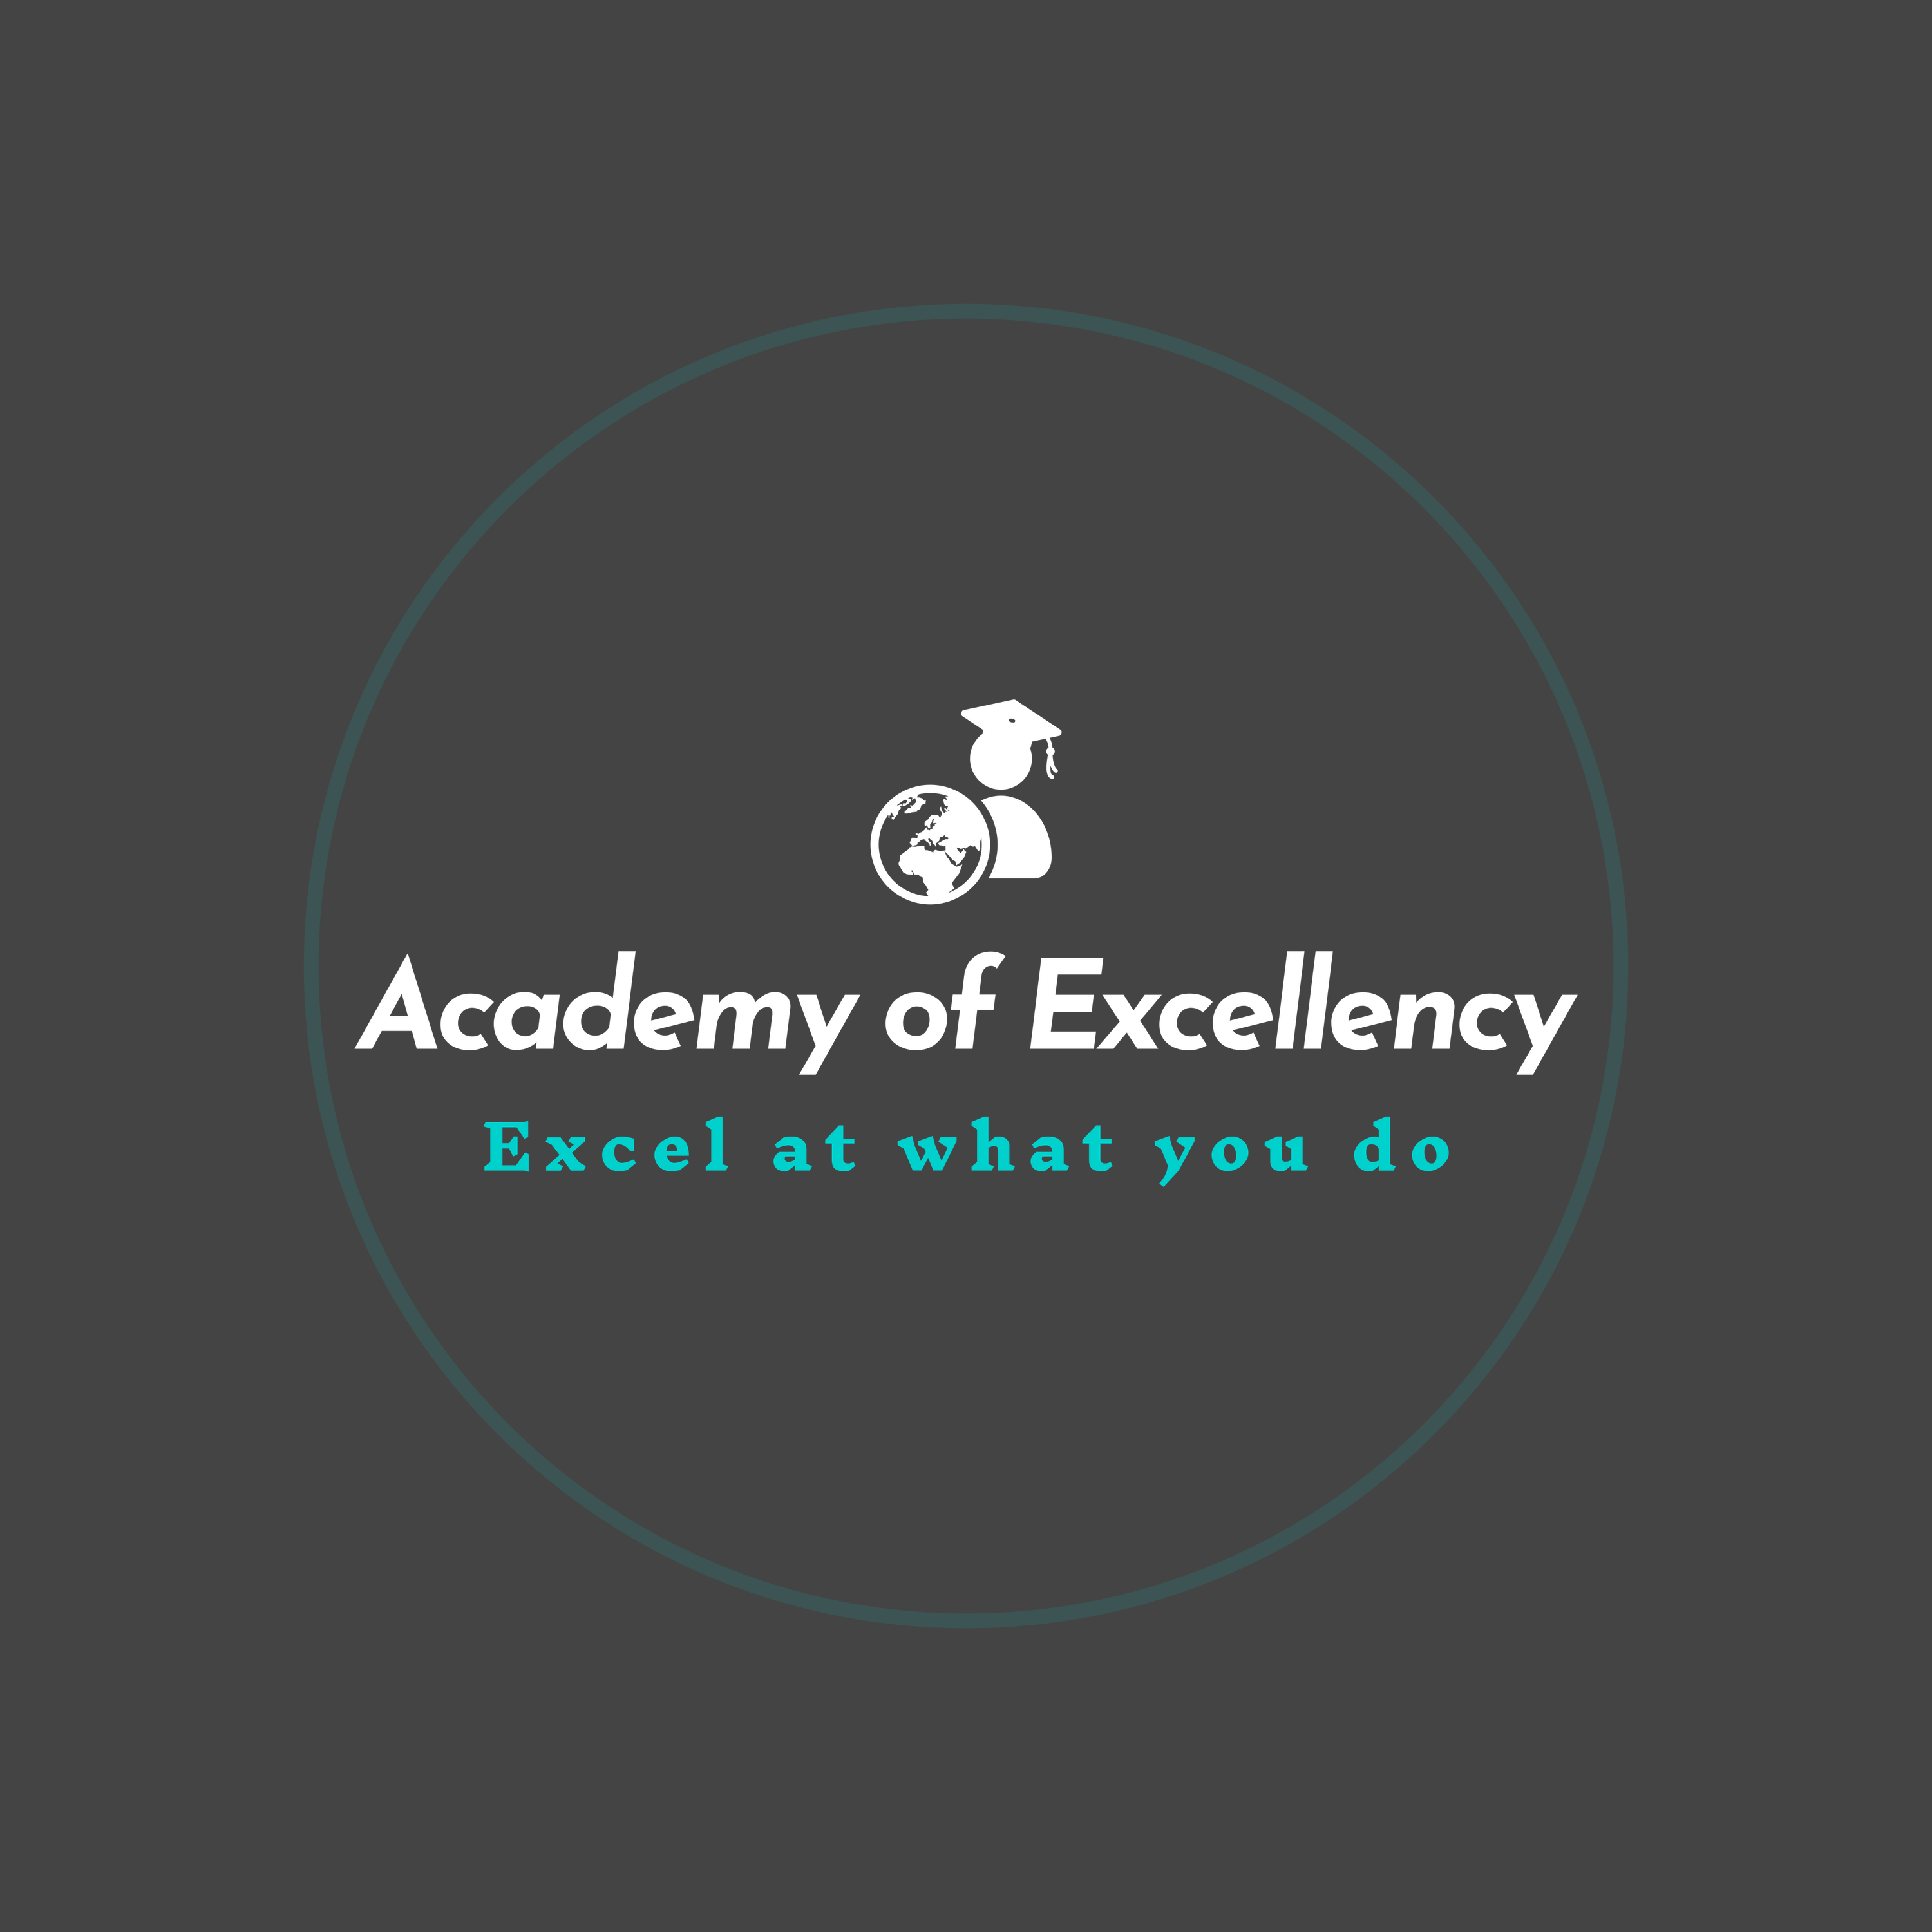 Academy of Excellency